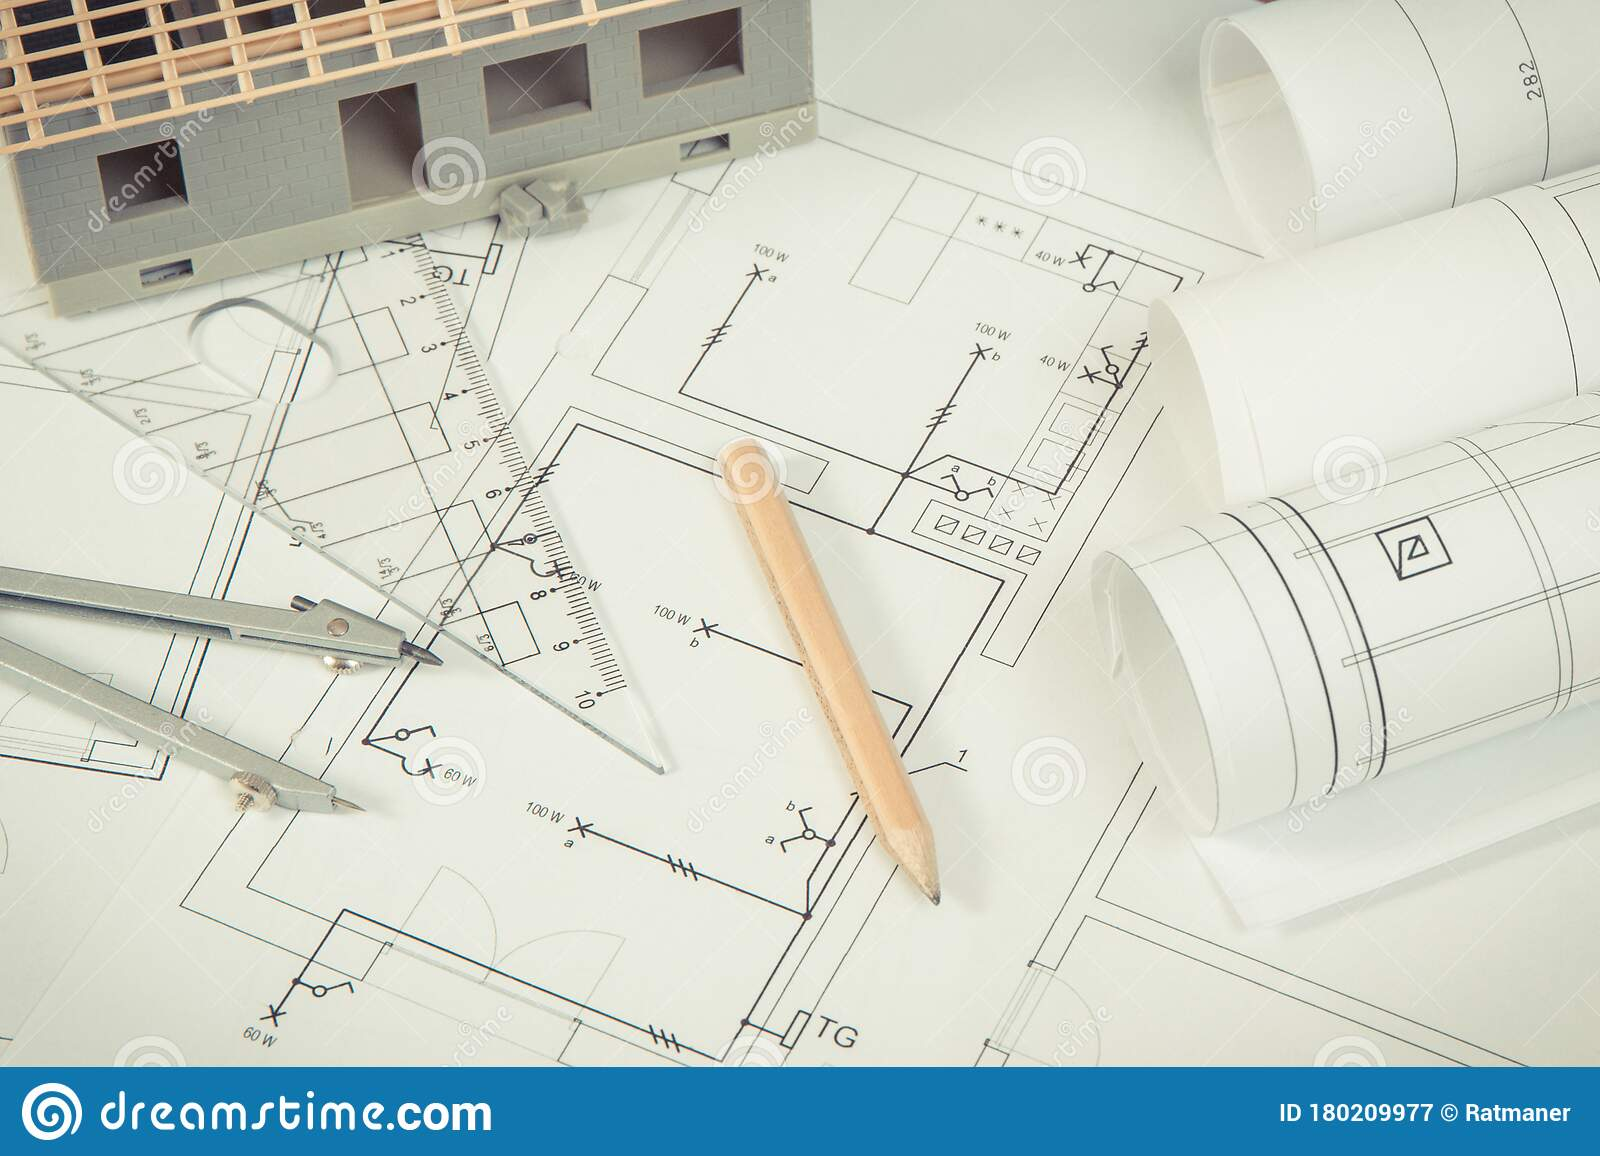 Electrical Diagrams  Accessories For Use In Engineer Jobs